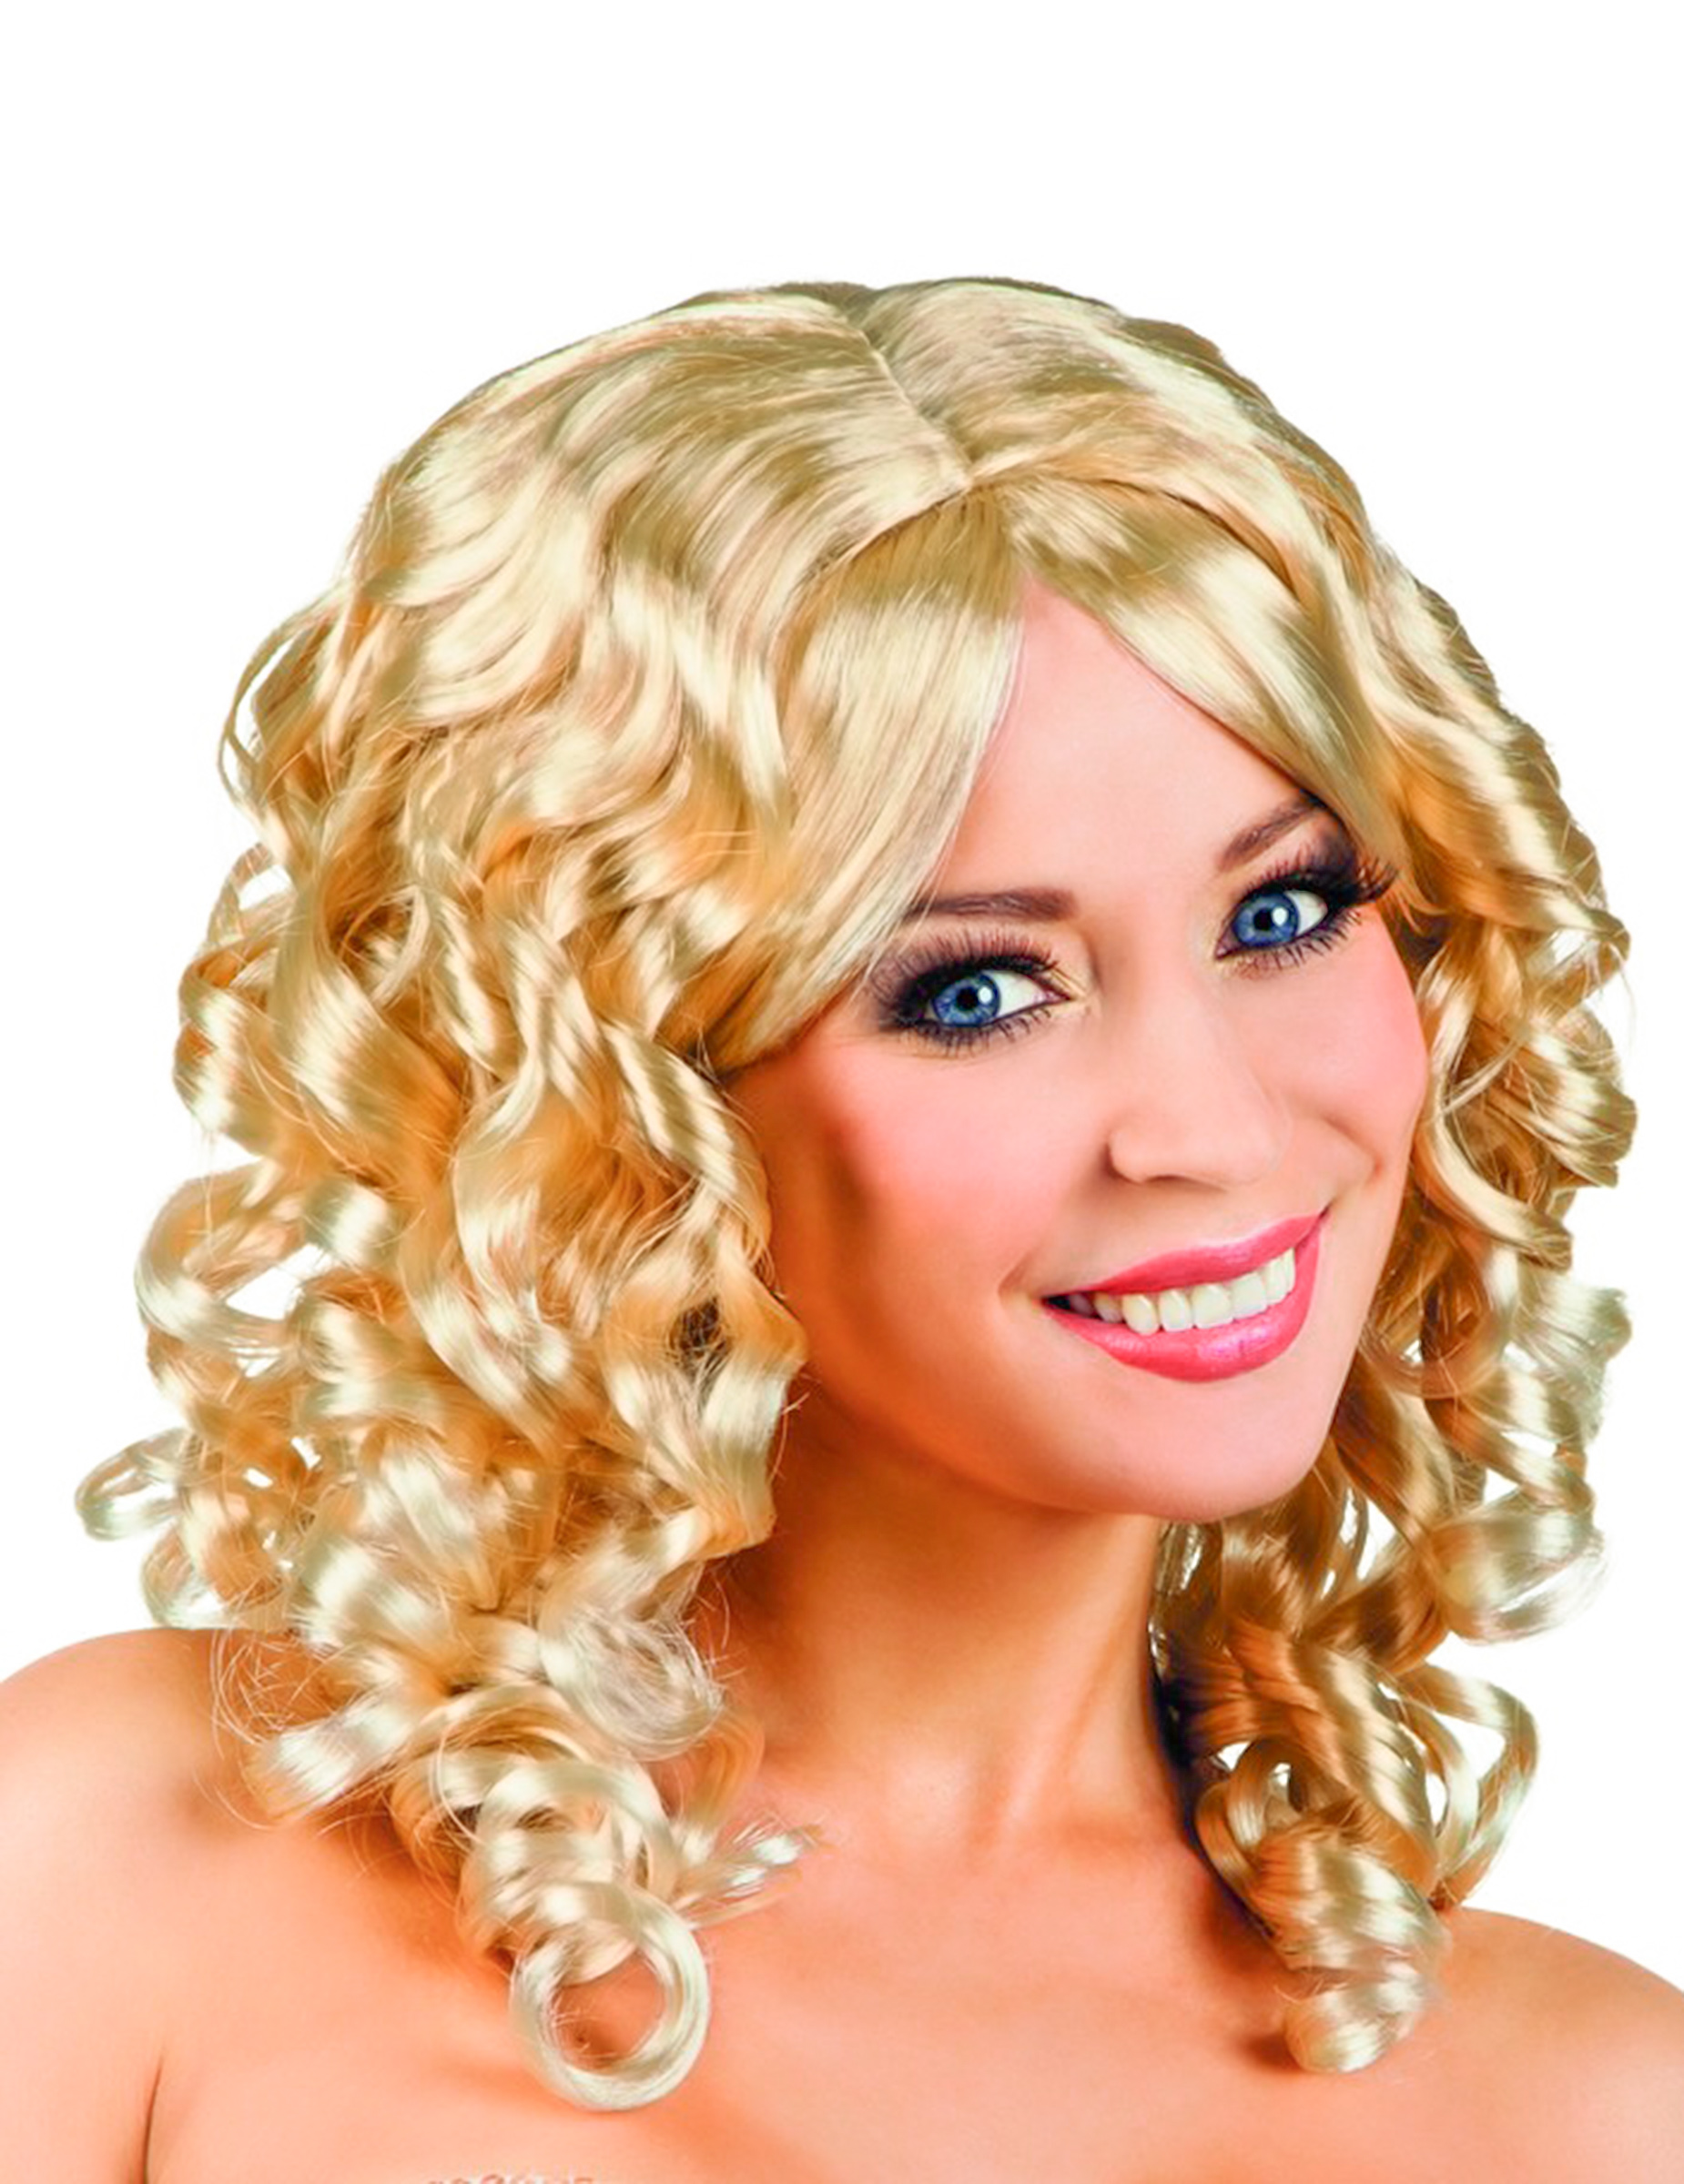 Damenperücke blonde Locken 68285